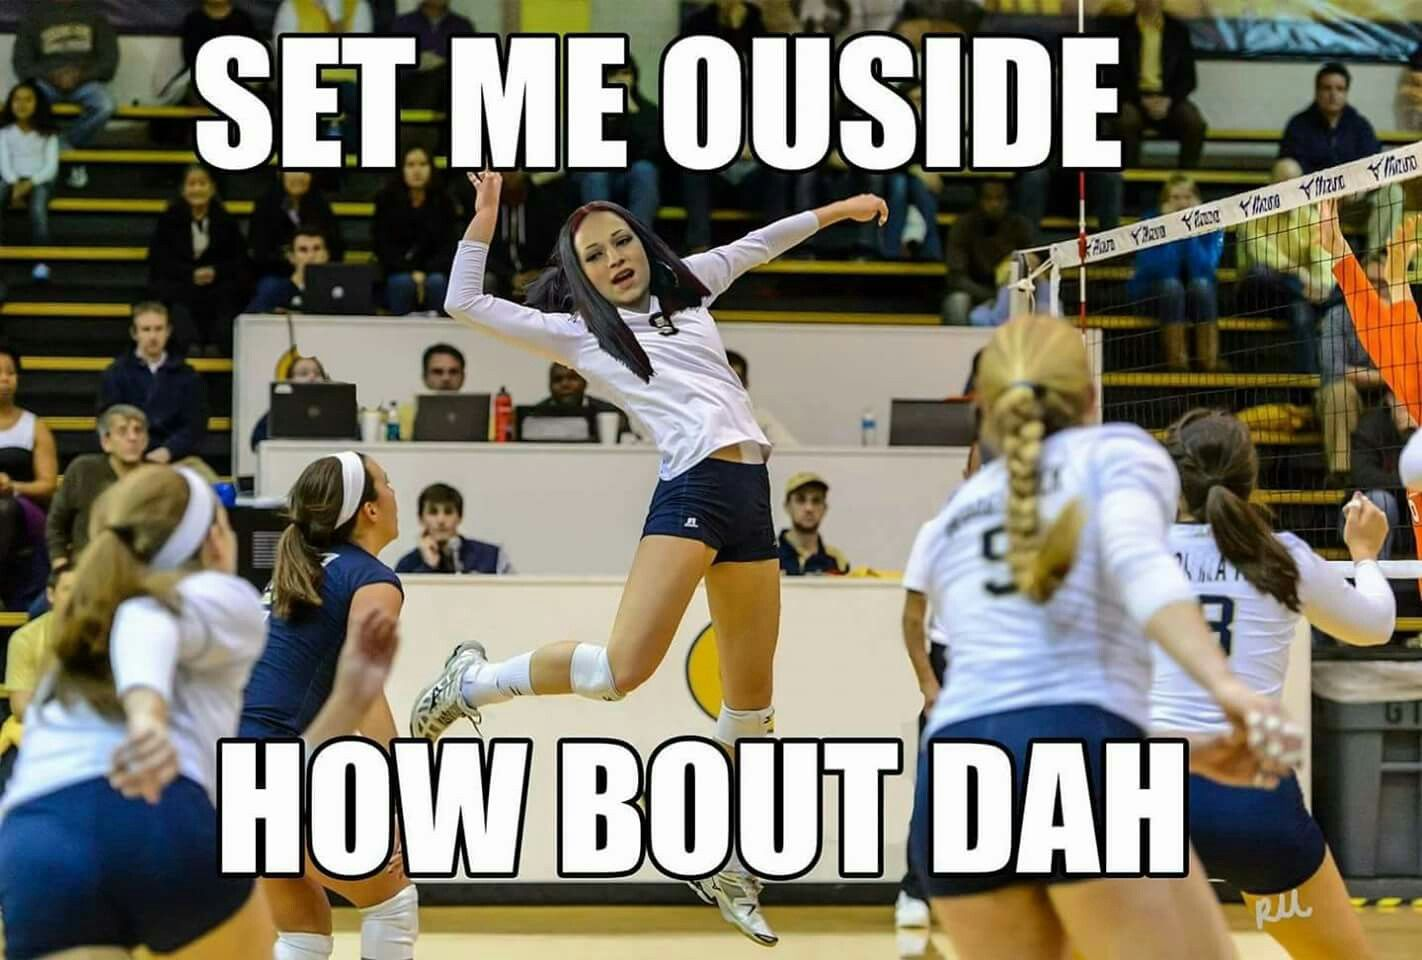 I M Pretty Sure This Meme Isn T Going Away Anytime Soon Credit Volleyball Memes Volleyball Humor Volleyball Jokes